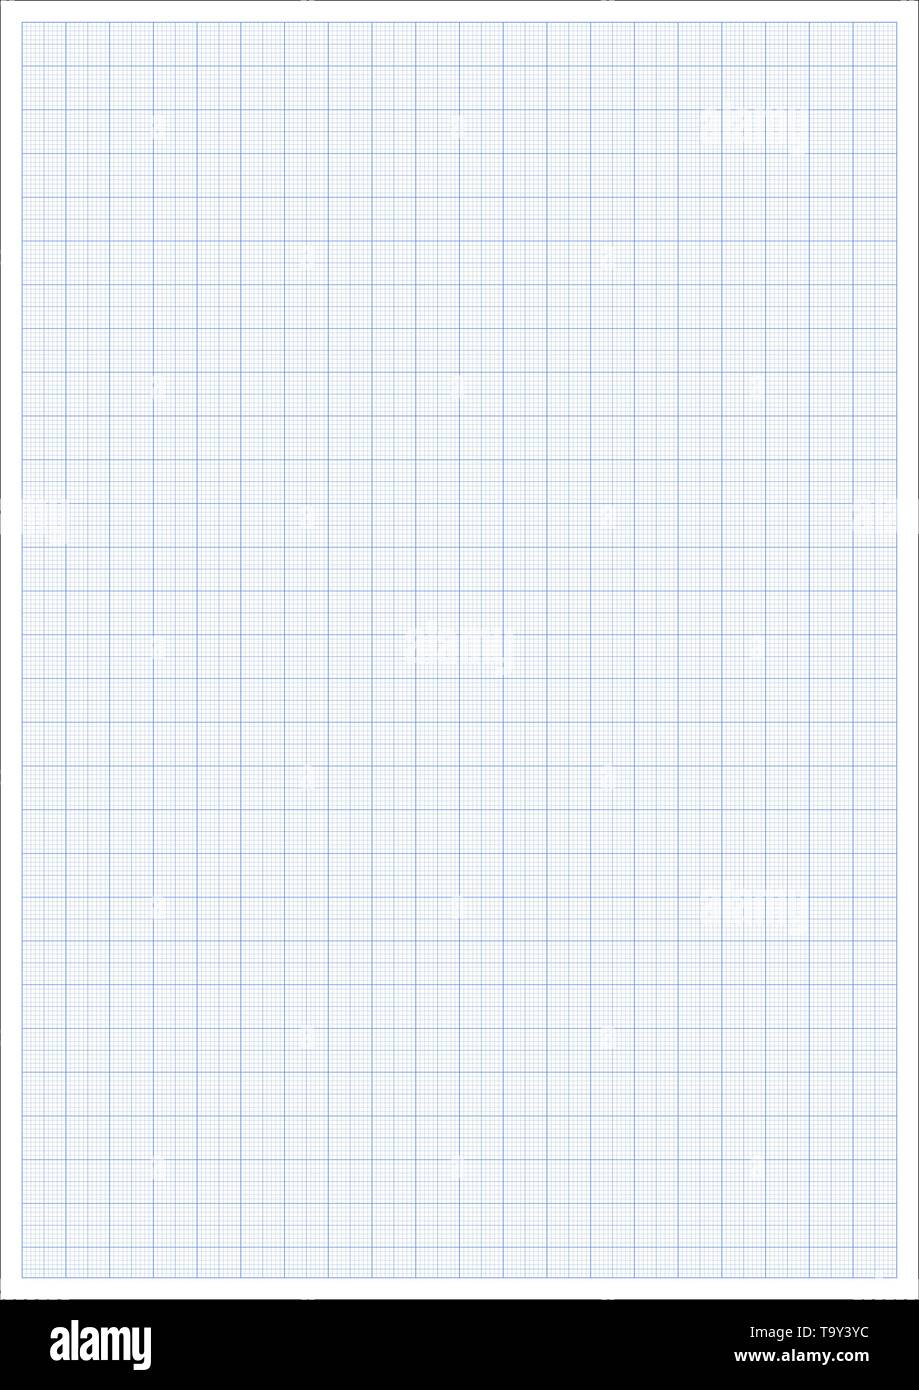 Millimeter paper. Millimeterpapier grid blue ruler. a4 graphic vector sheet - Stock Image